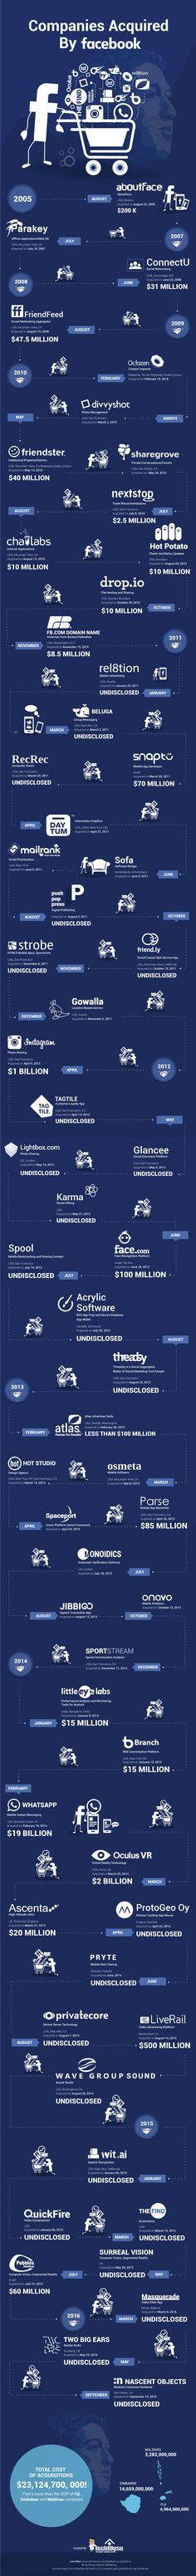 Facebook acquisitions #infographic